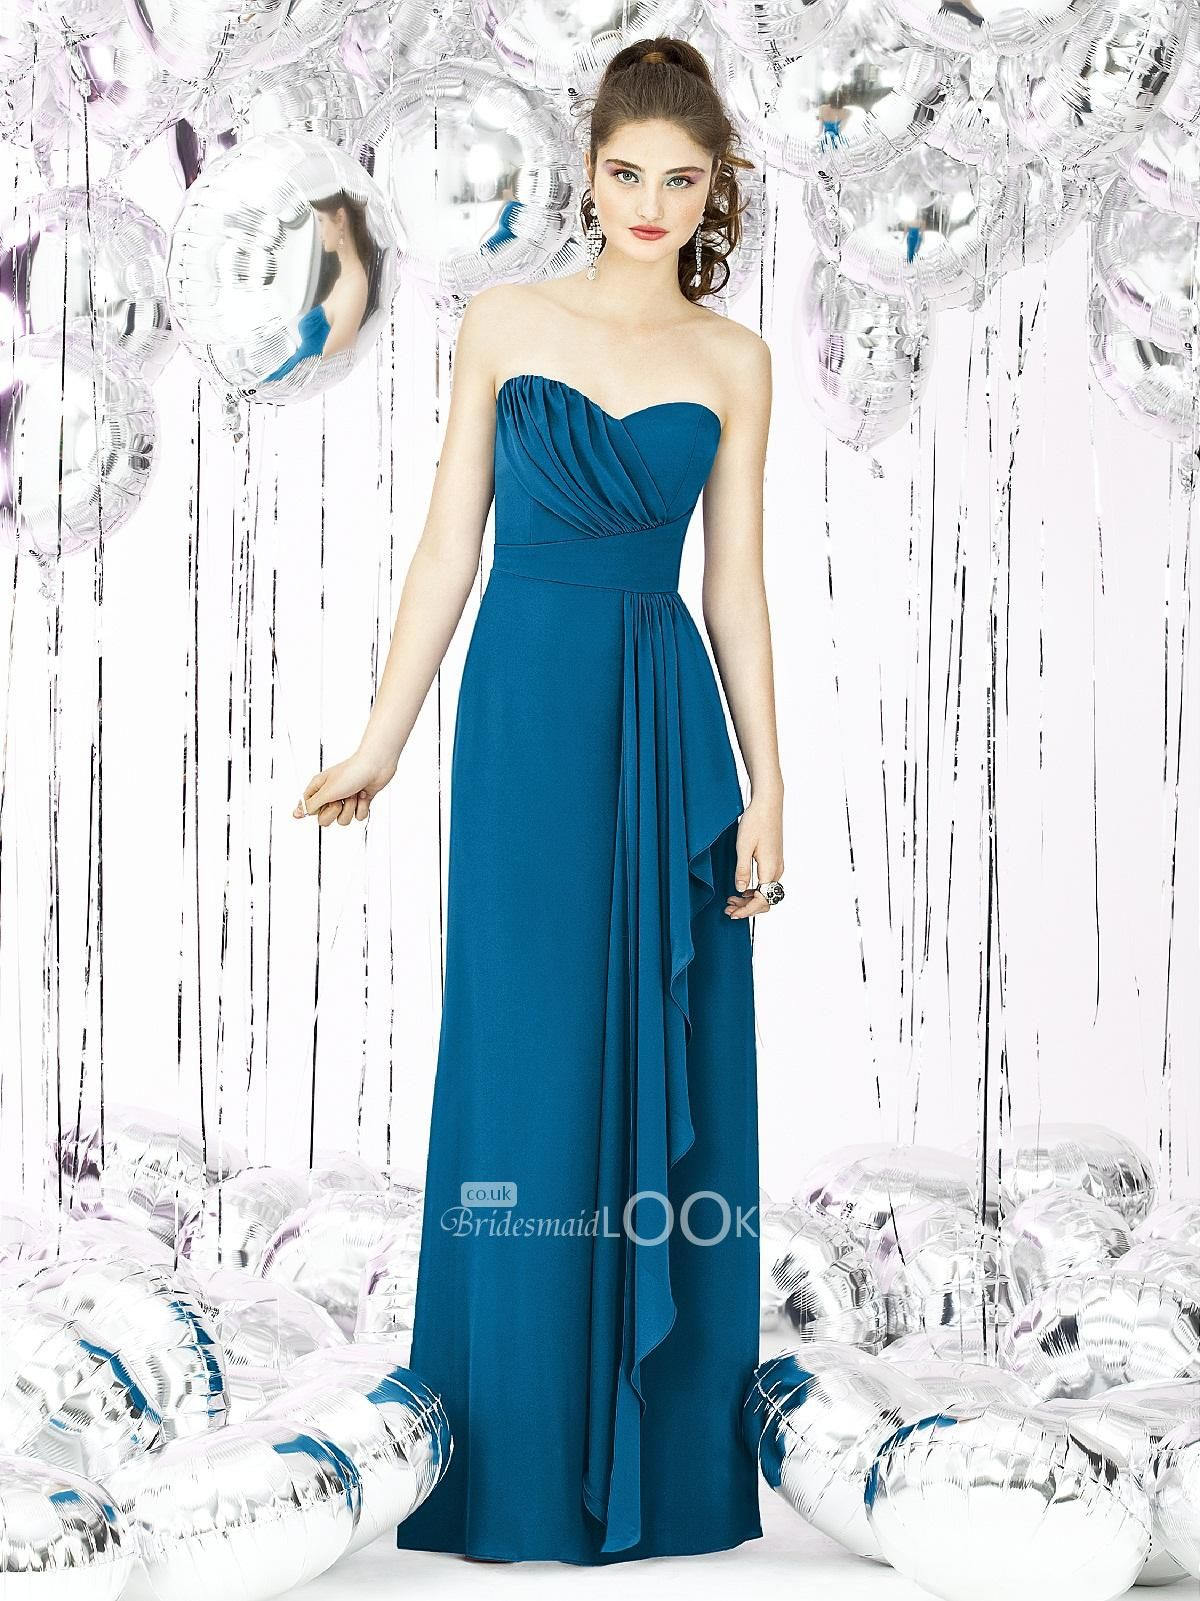 Bluebridesmaiddresses length strapless ocean blue length strapless ocean blue bridesmaid dress ombrellifo Image collections